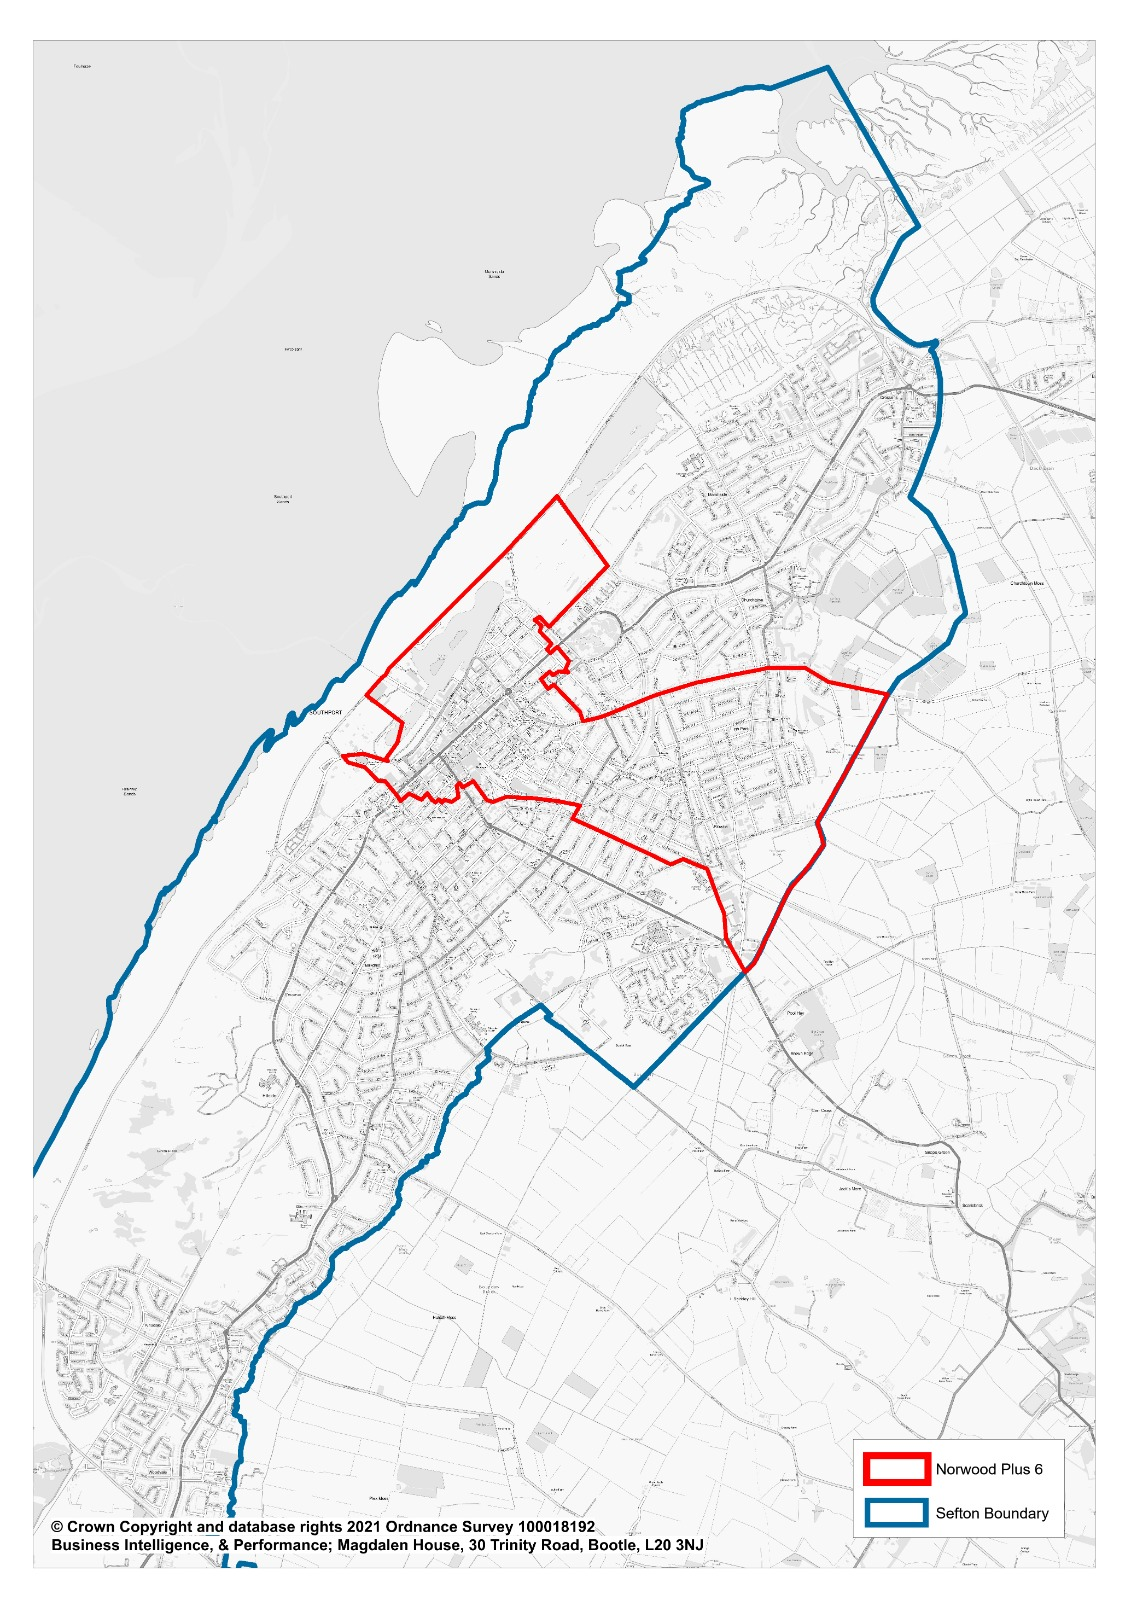 The area (in red) being targeted by Sefton Council for surge testing of the South African Covid-19 variant